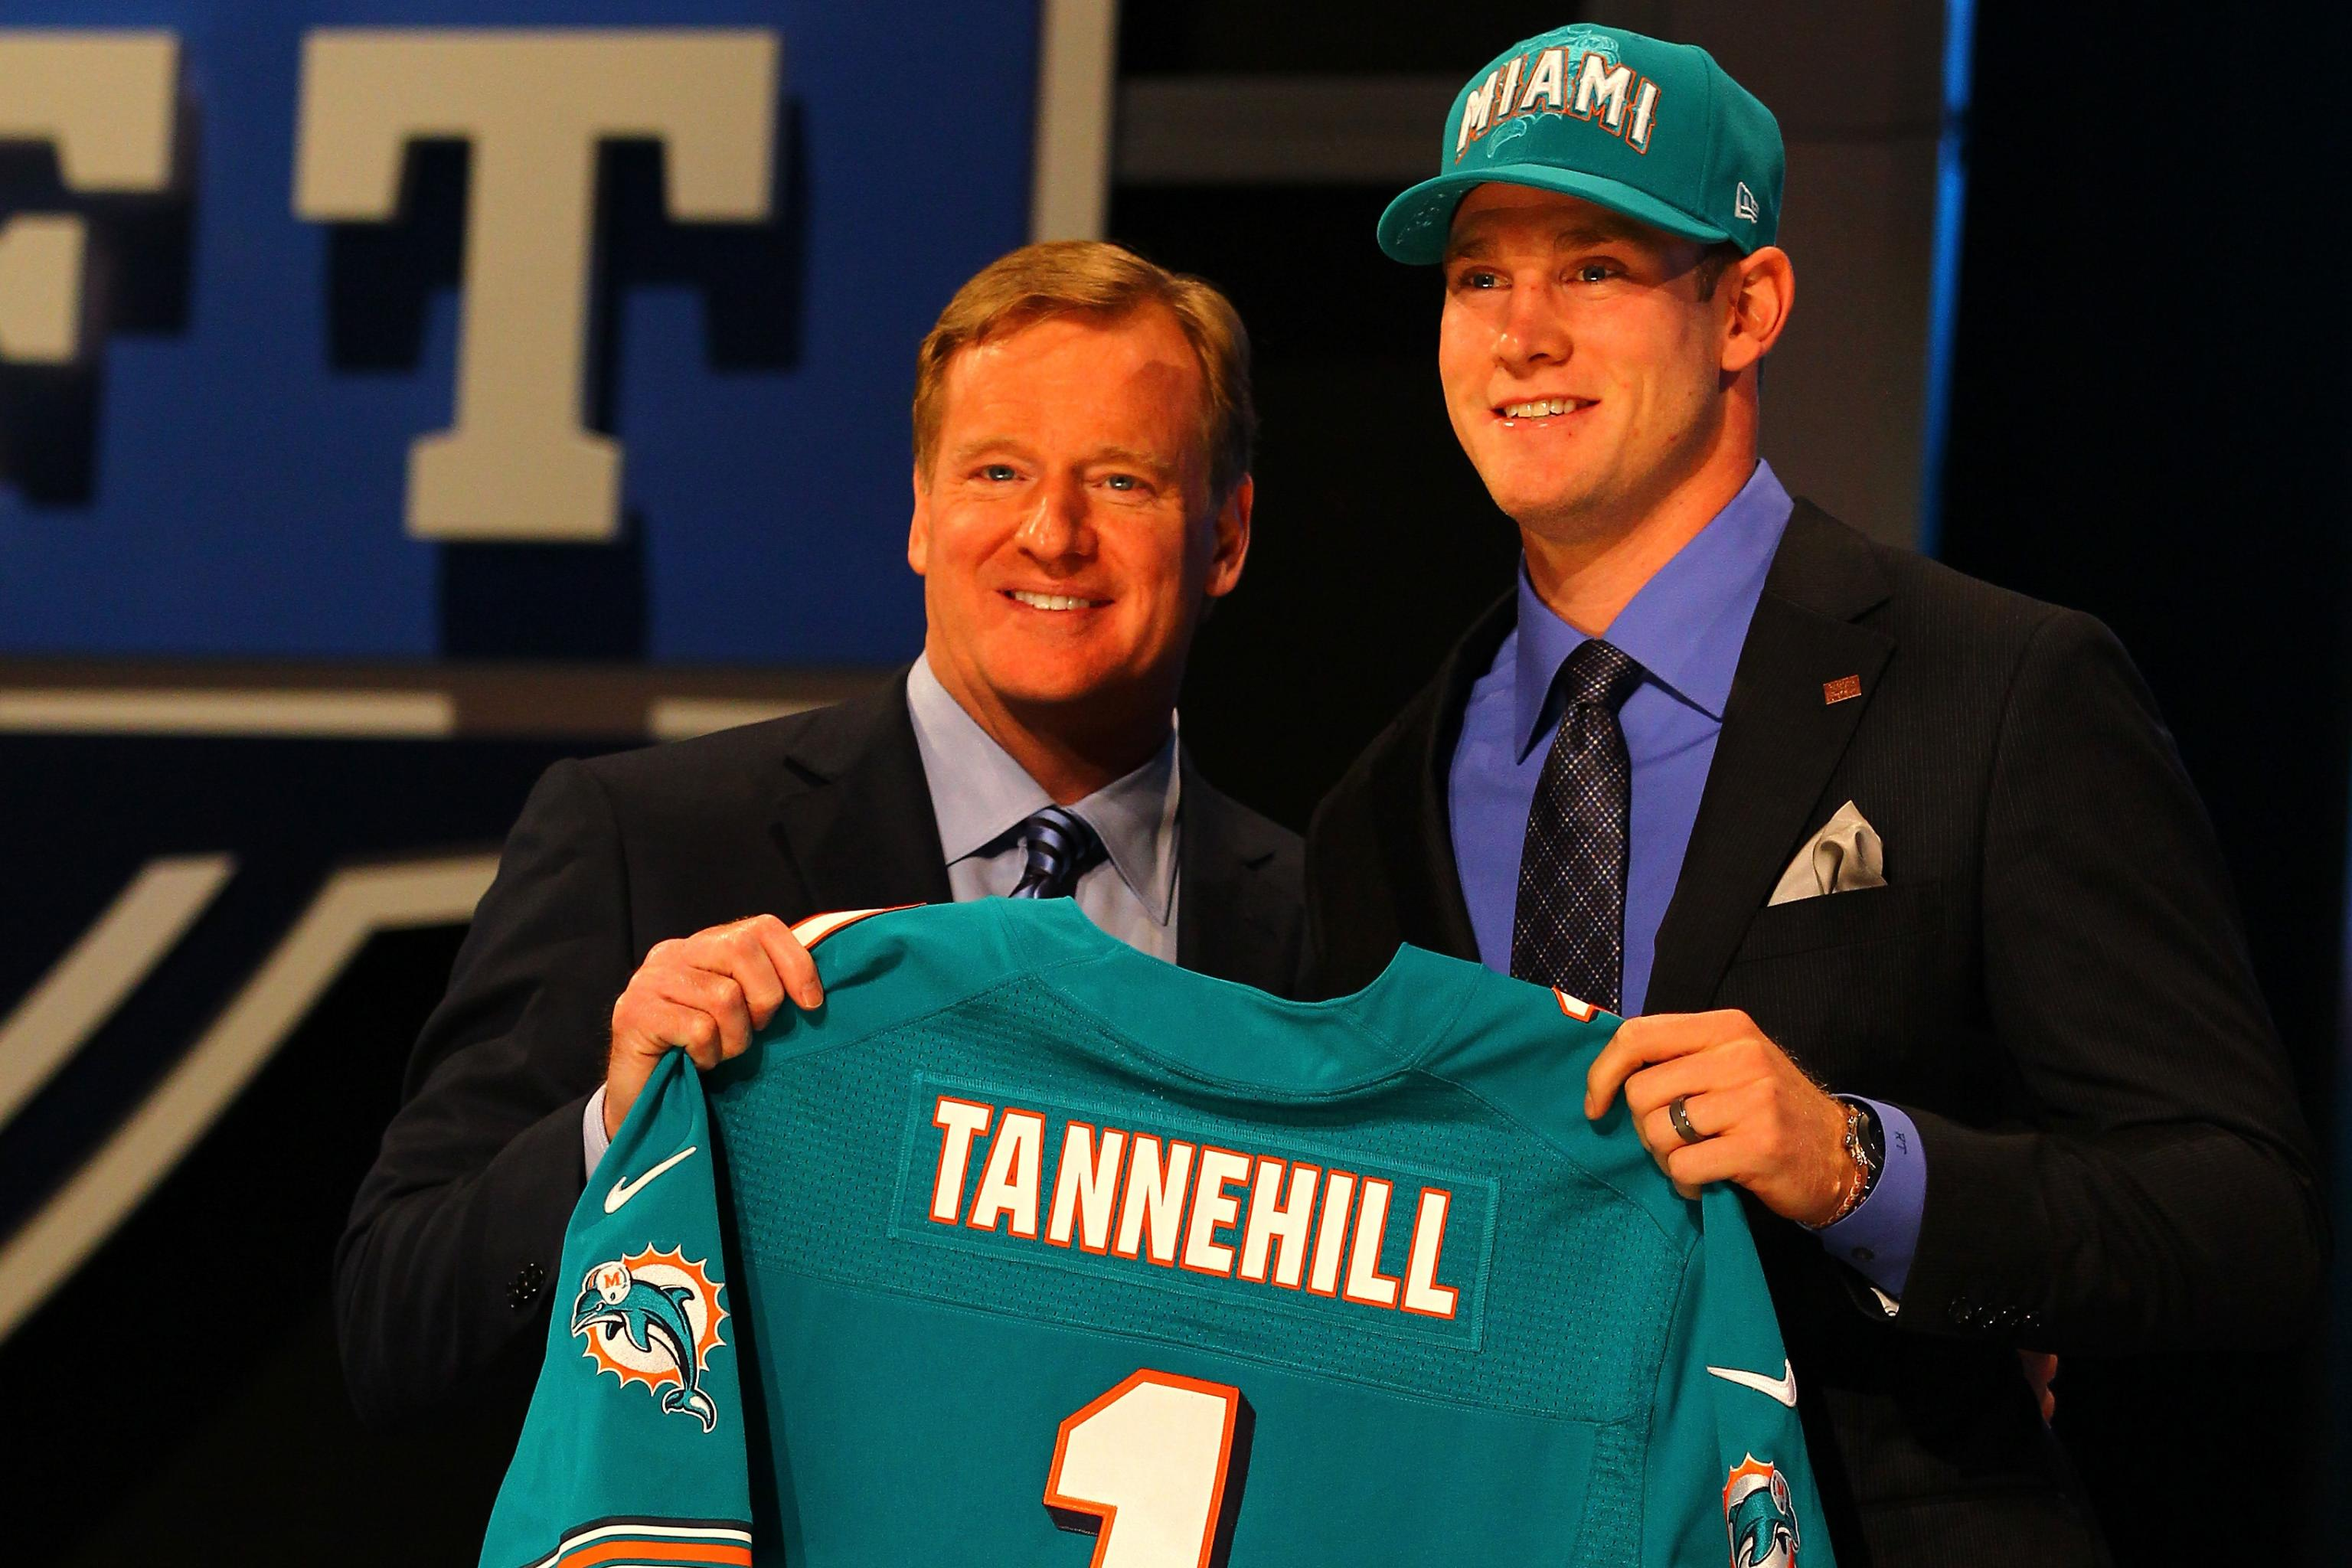 Miami Dolphins Misguided Love Affair With Ryan Tannehill Bleacher Report Latest News Videos And Highlights